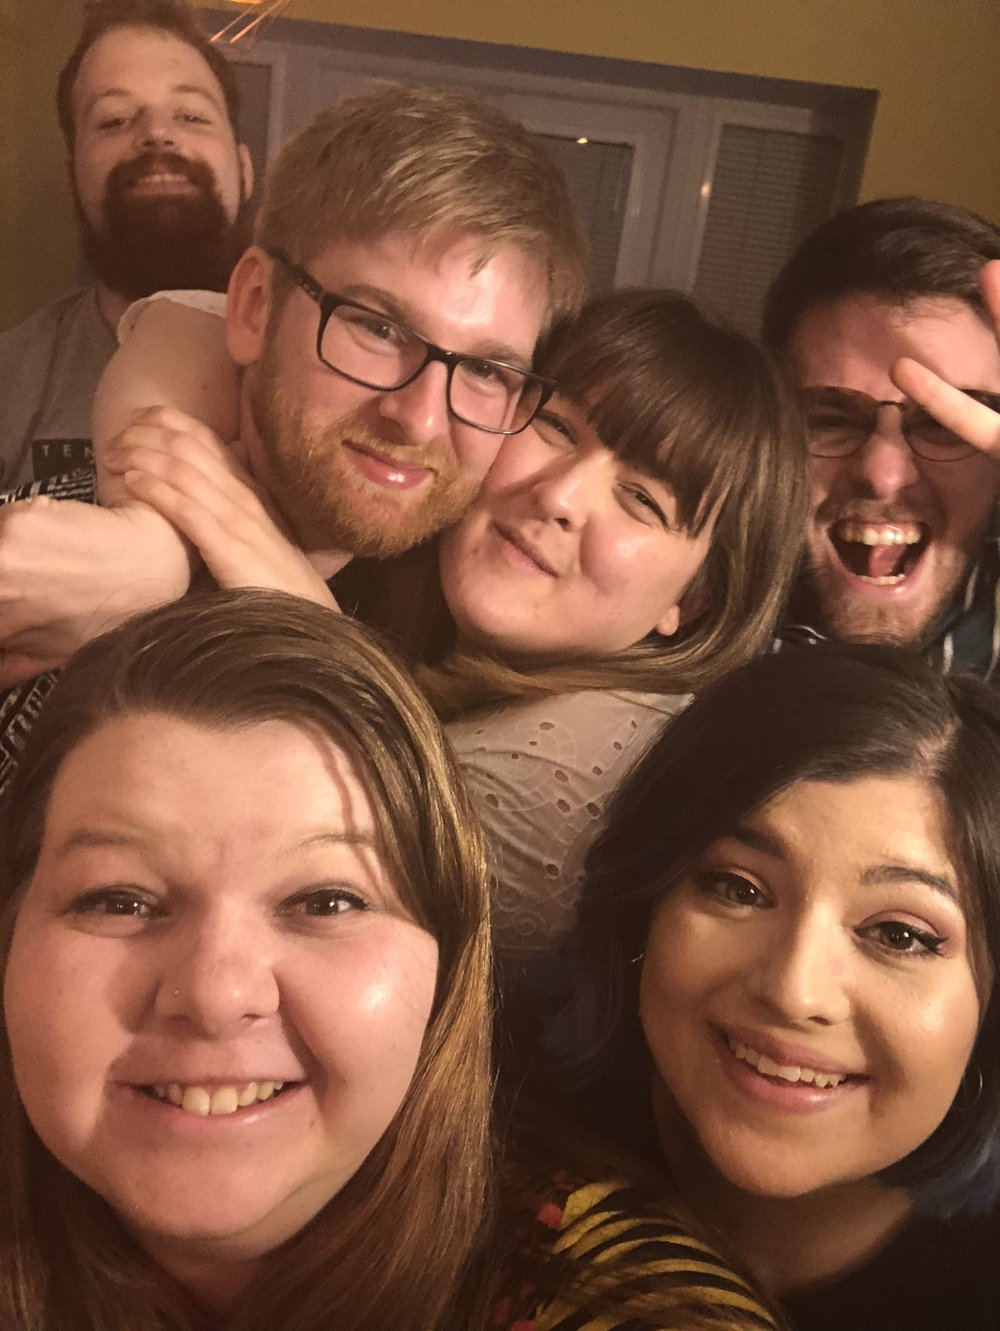 Sober me at the back. (everyone else is pretty drunk by this point).